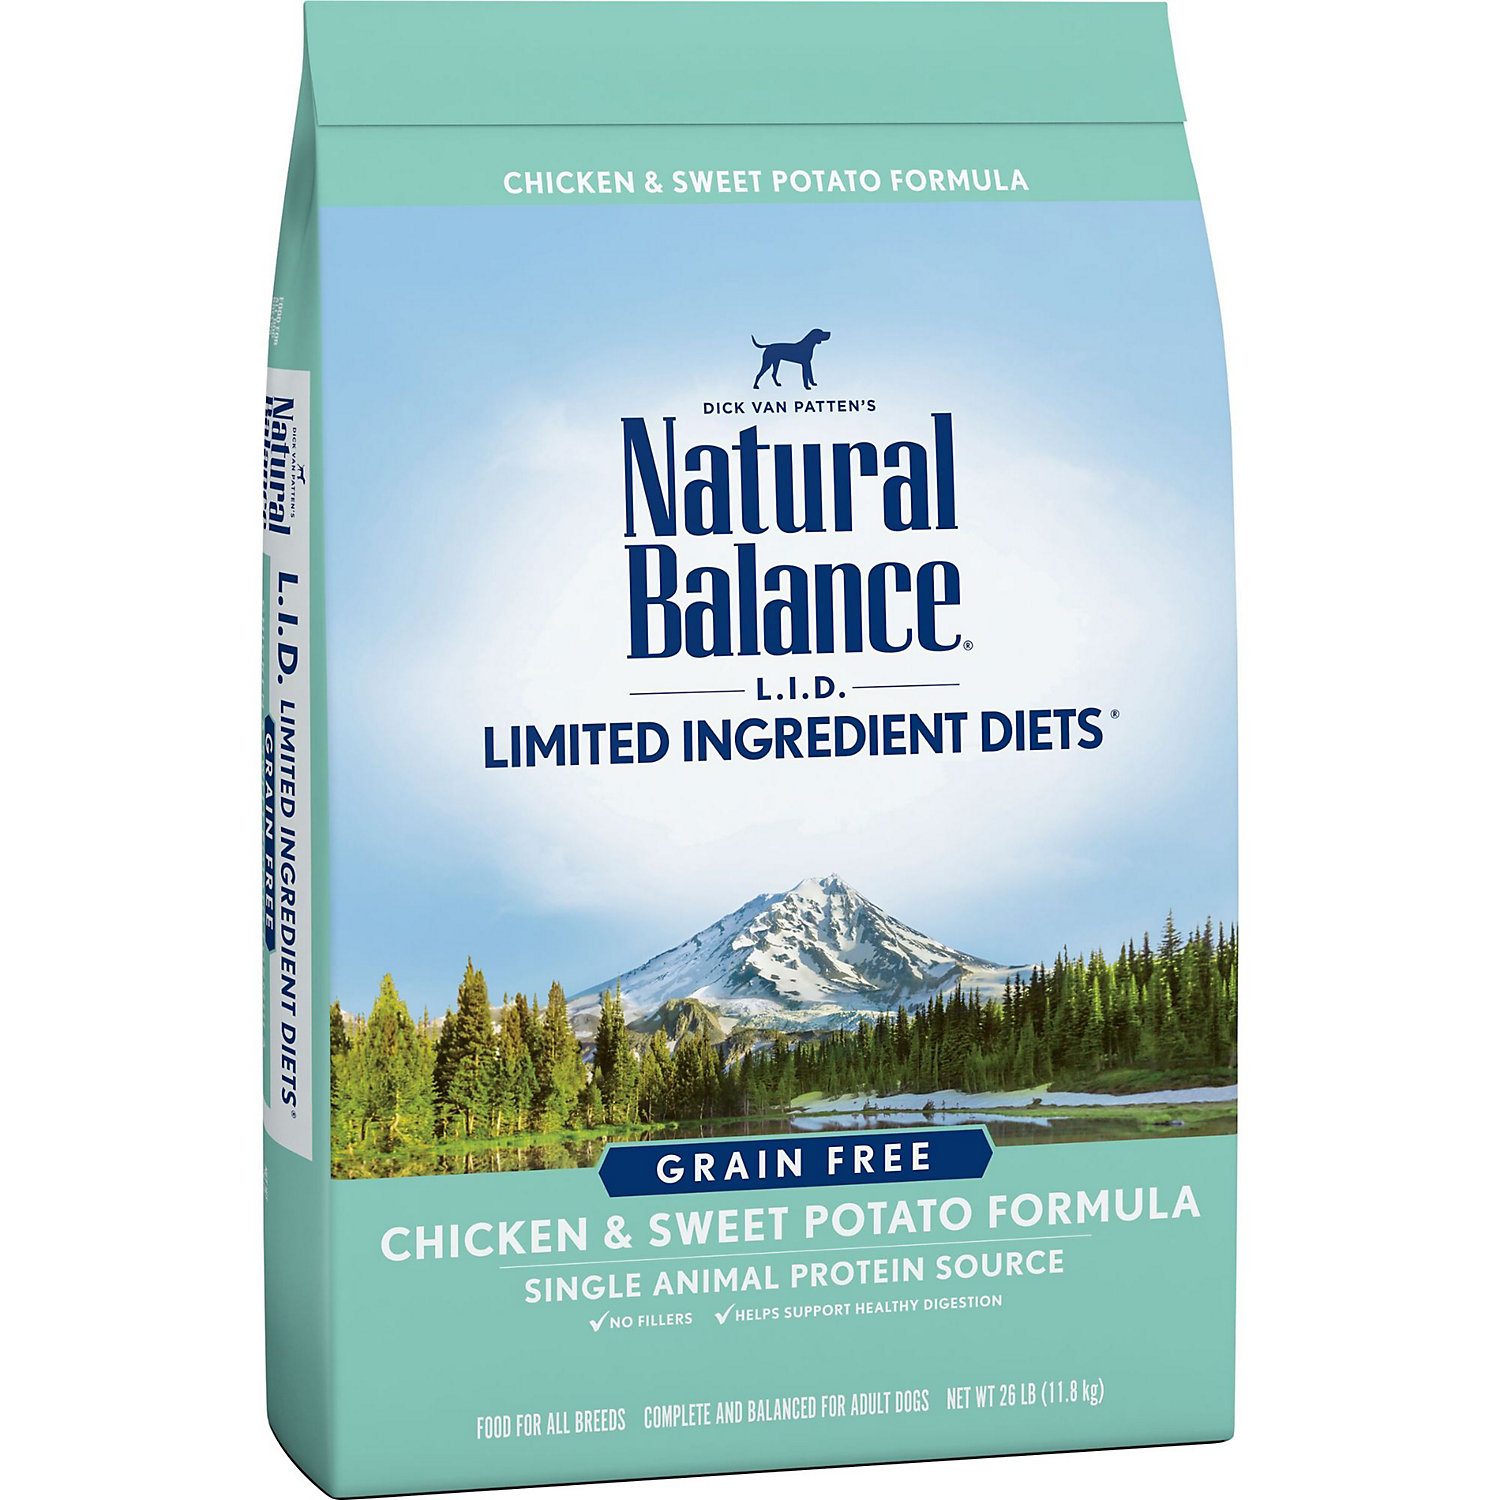 Natural Balance Pet Food Pacoima Ca